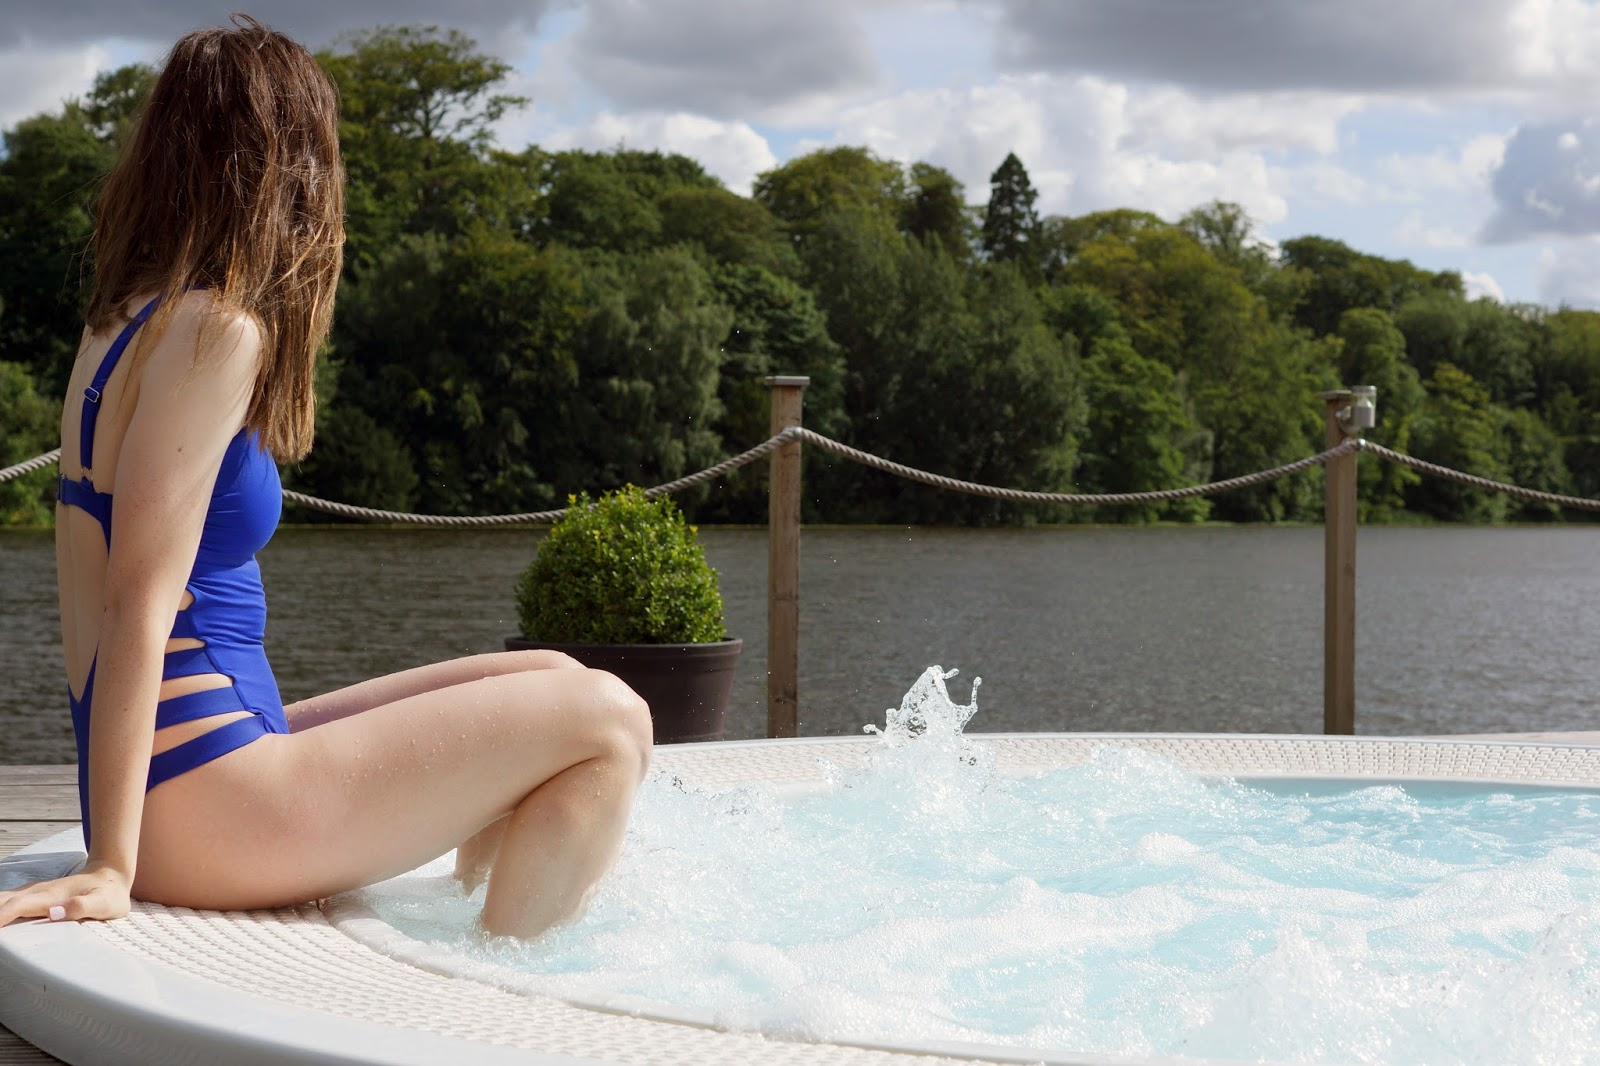 Hello Freckles Wynyard Hall Spa Billingham Stockton North East England Spa Day Pamper Review Outdoor Hot Tub Blogger